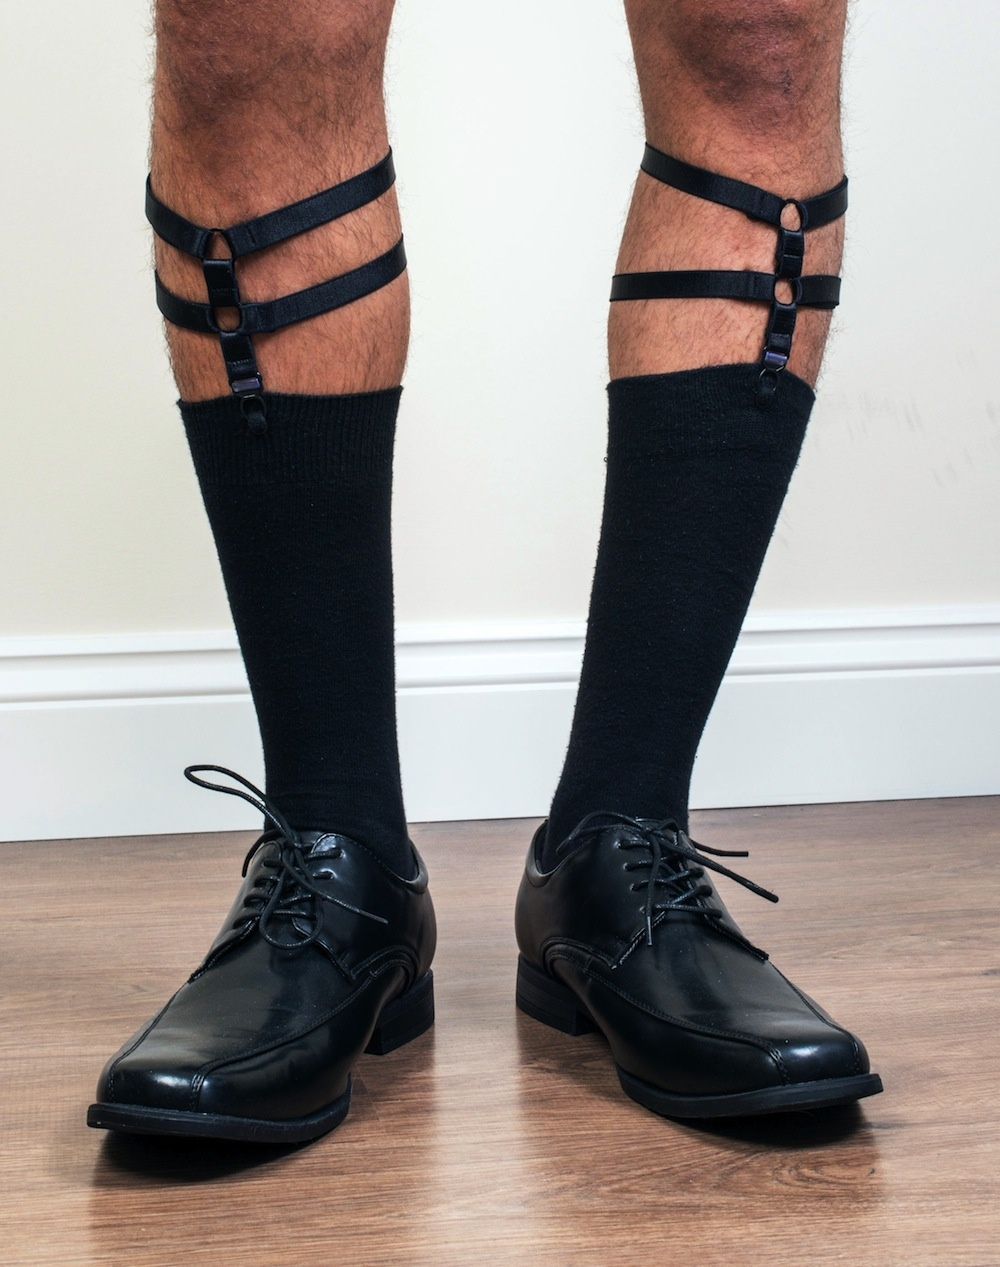 c0b9930e1a2 ... the calf socks were once the only reliable way to keep your socks from  pooling around your ankles. But as sock manufacturing improved